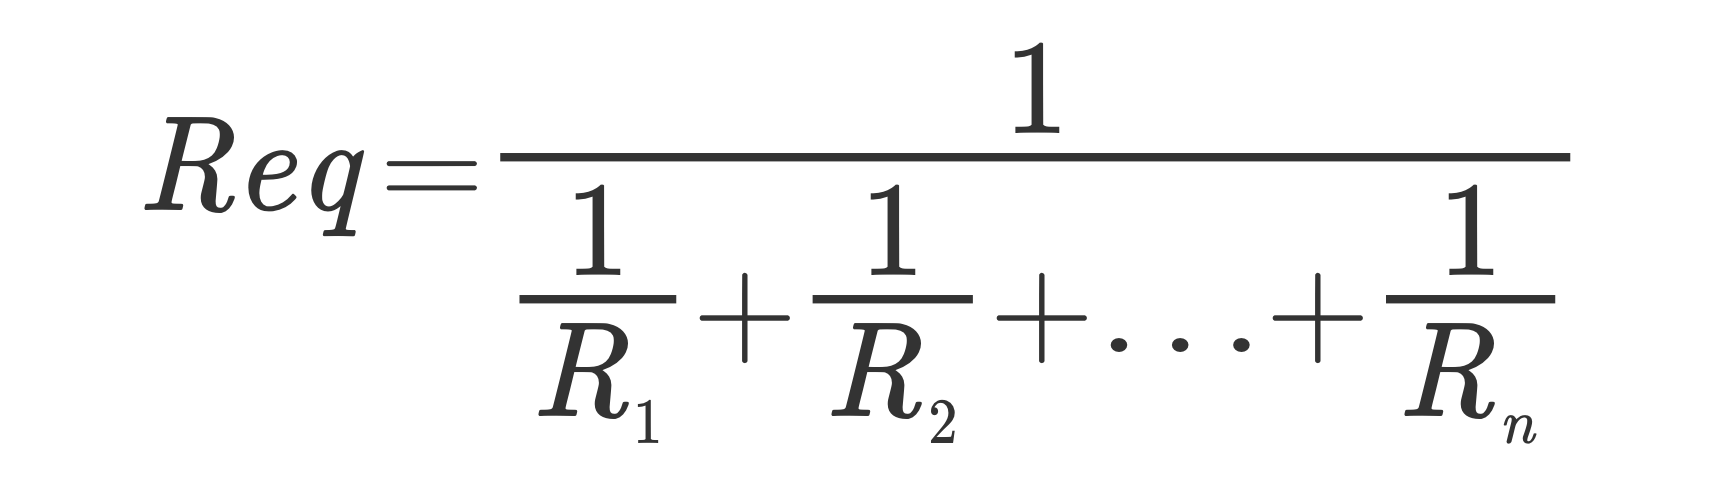 Equivalent resistance parallel circuits